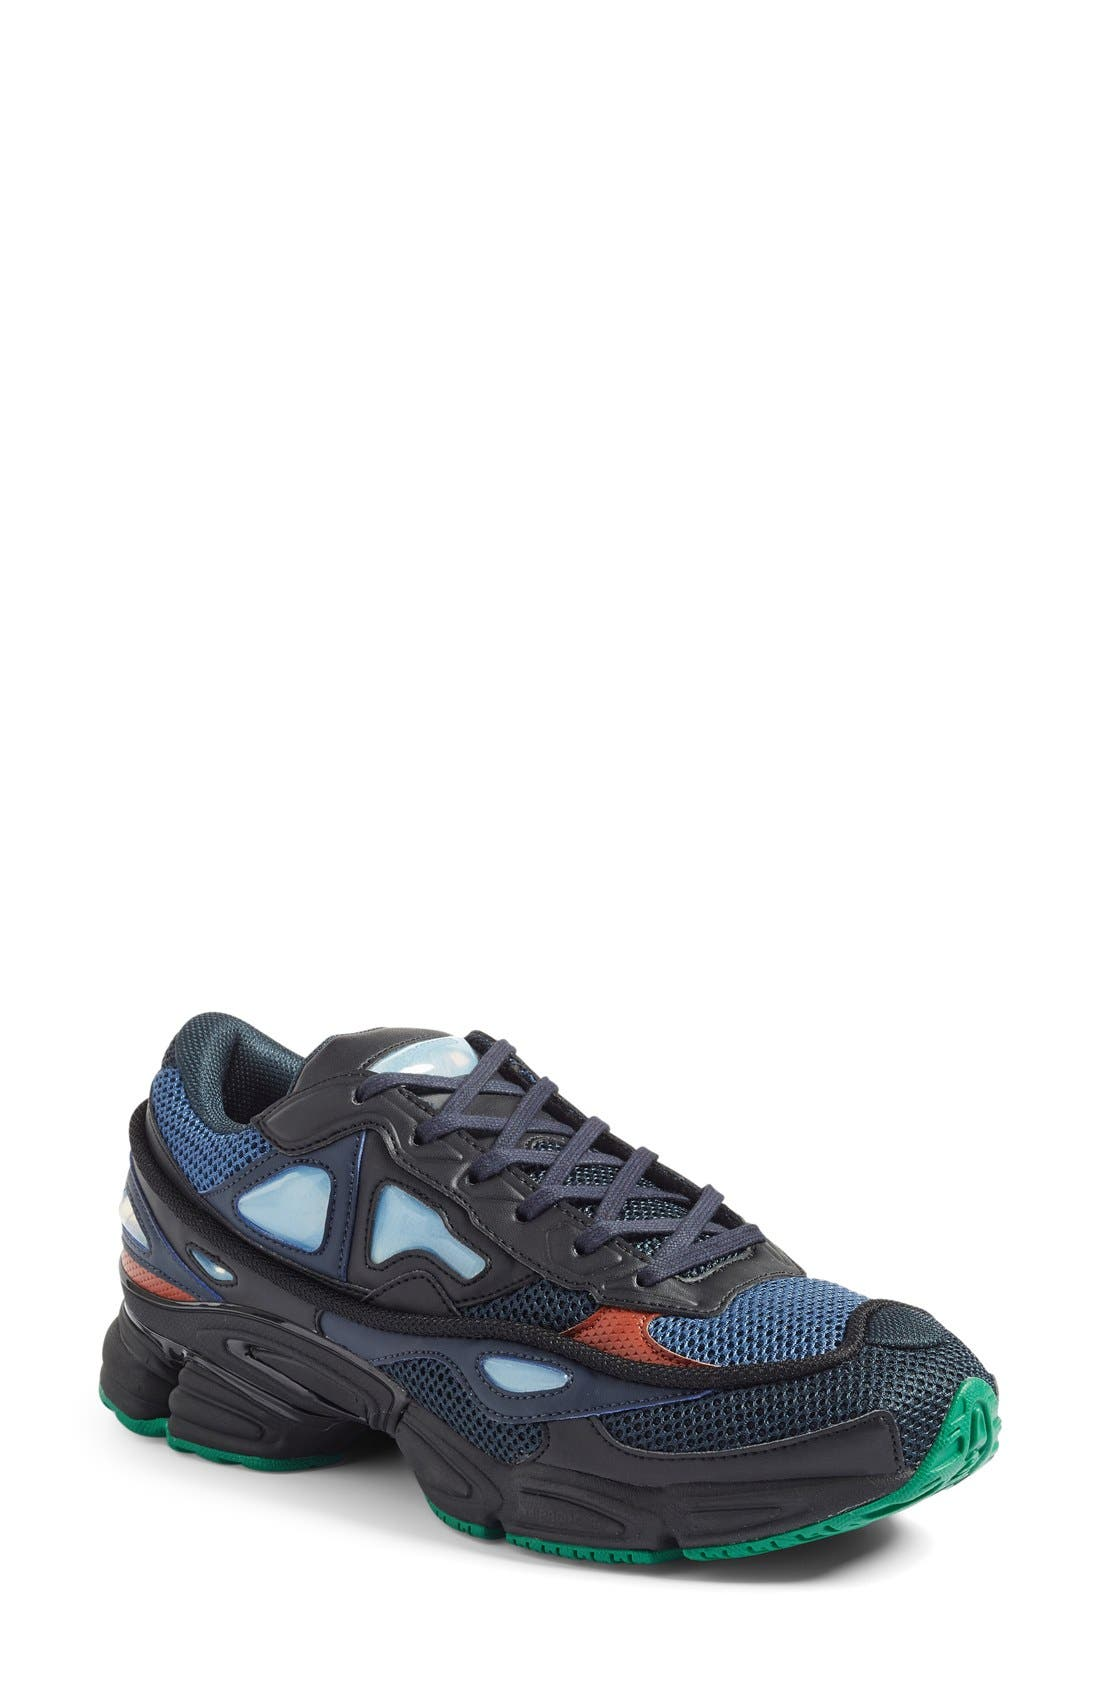 Alternate Image 1 Selected - adidas by Raf Simons Ozwego 2 Sneaker (Women)